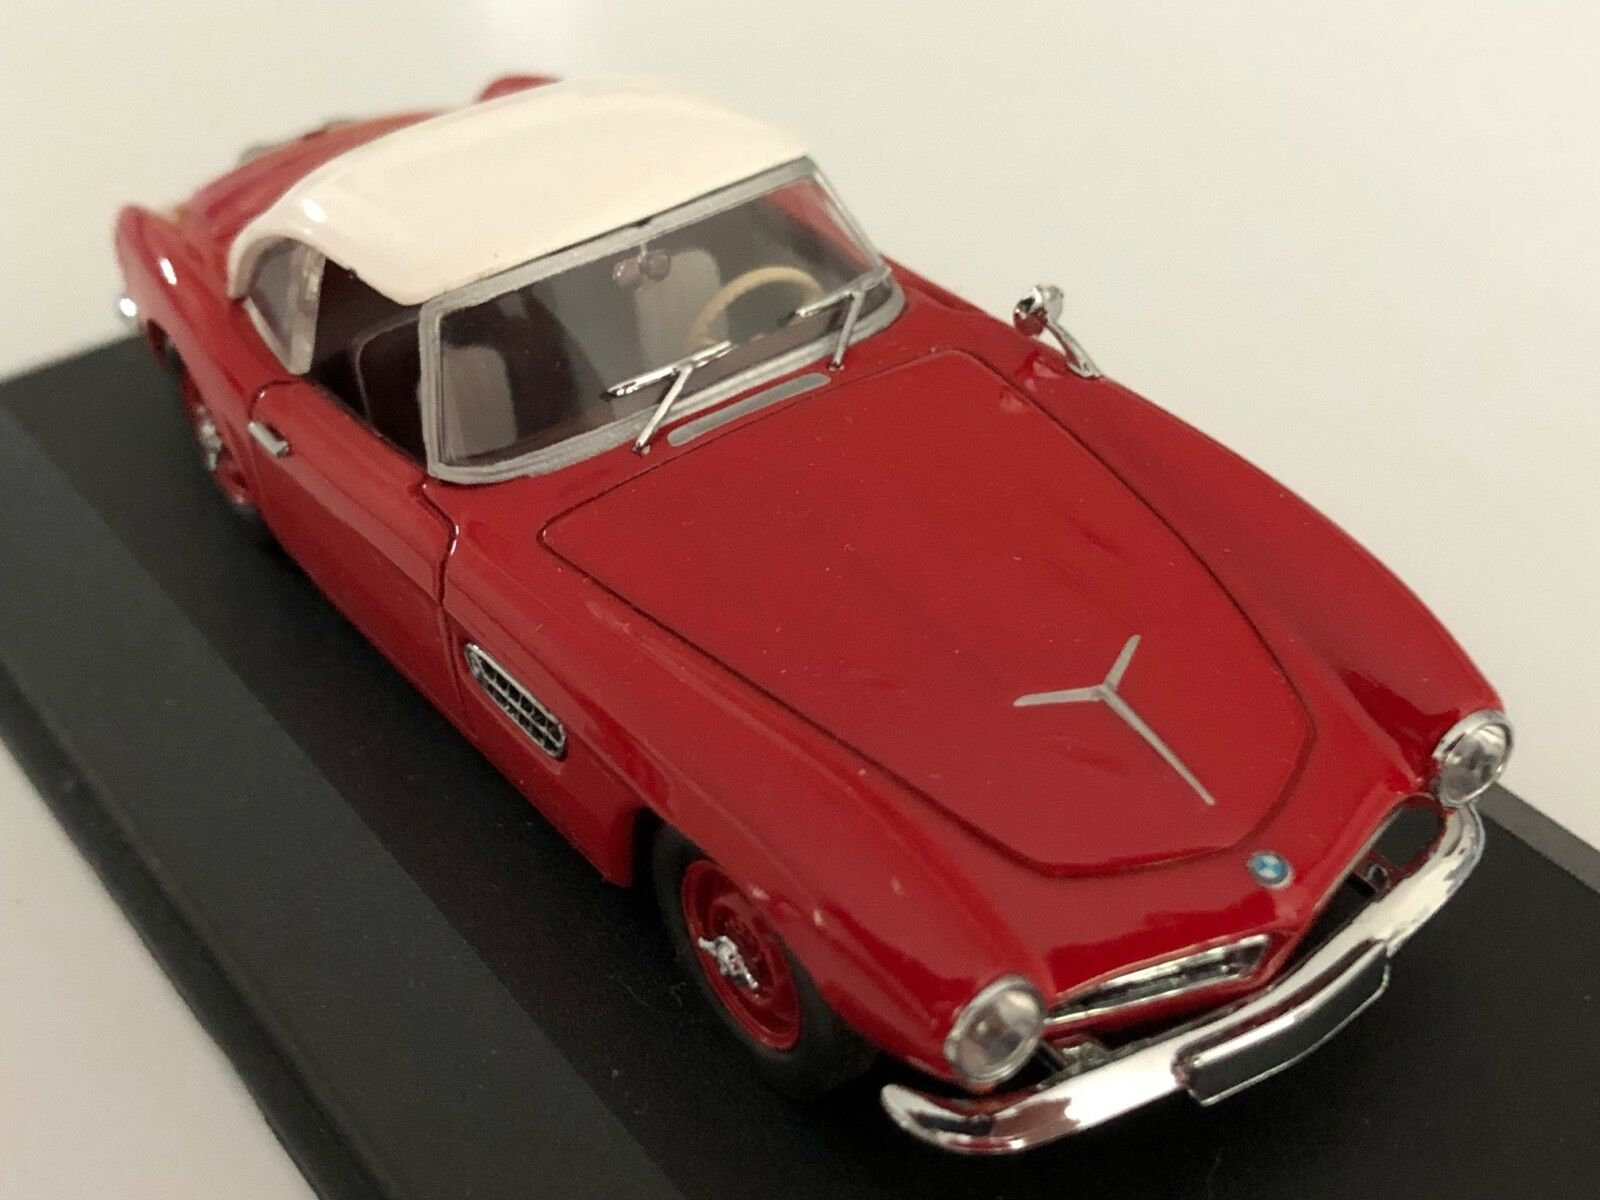 Paul's Model Model Model Art, Minichamps BMW 507 Cabrio 1 43 collection of 3 models 66fe4b